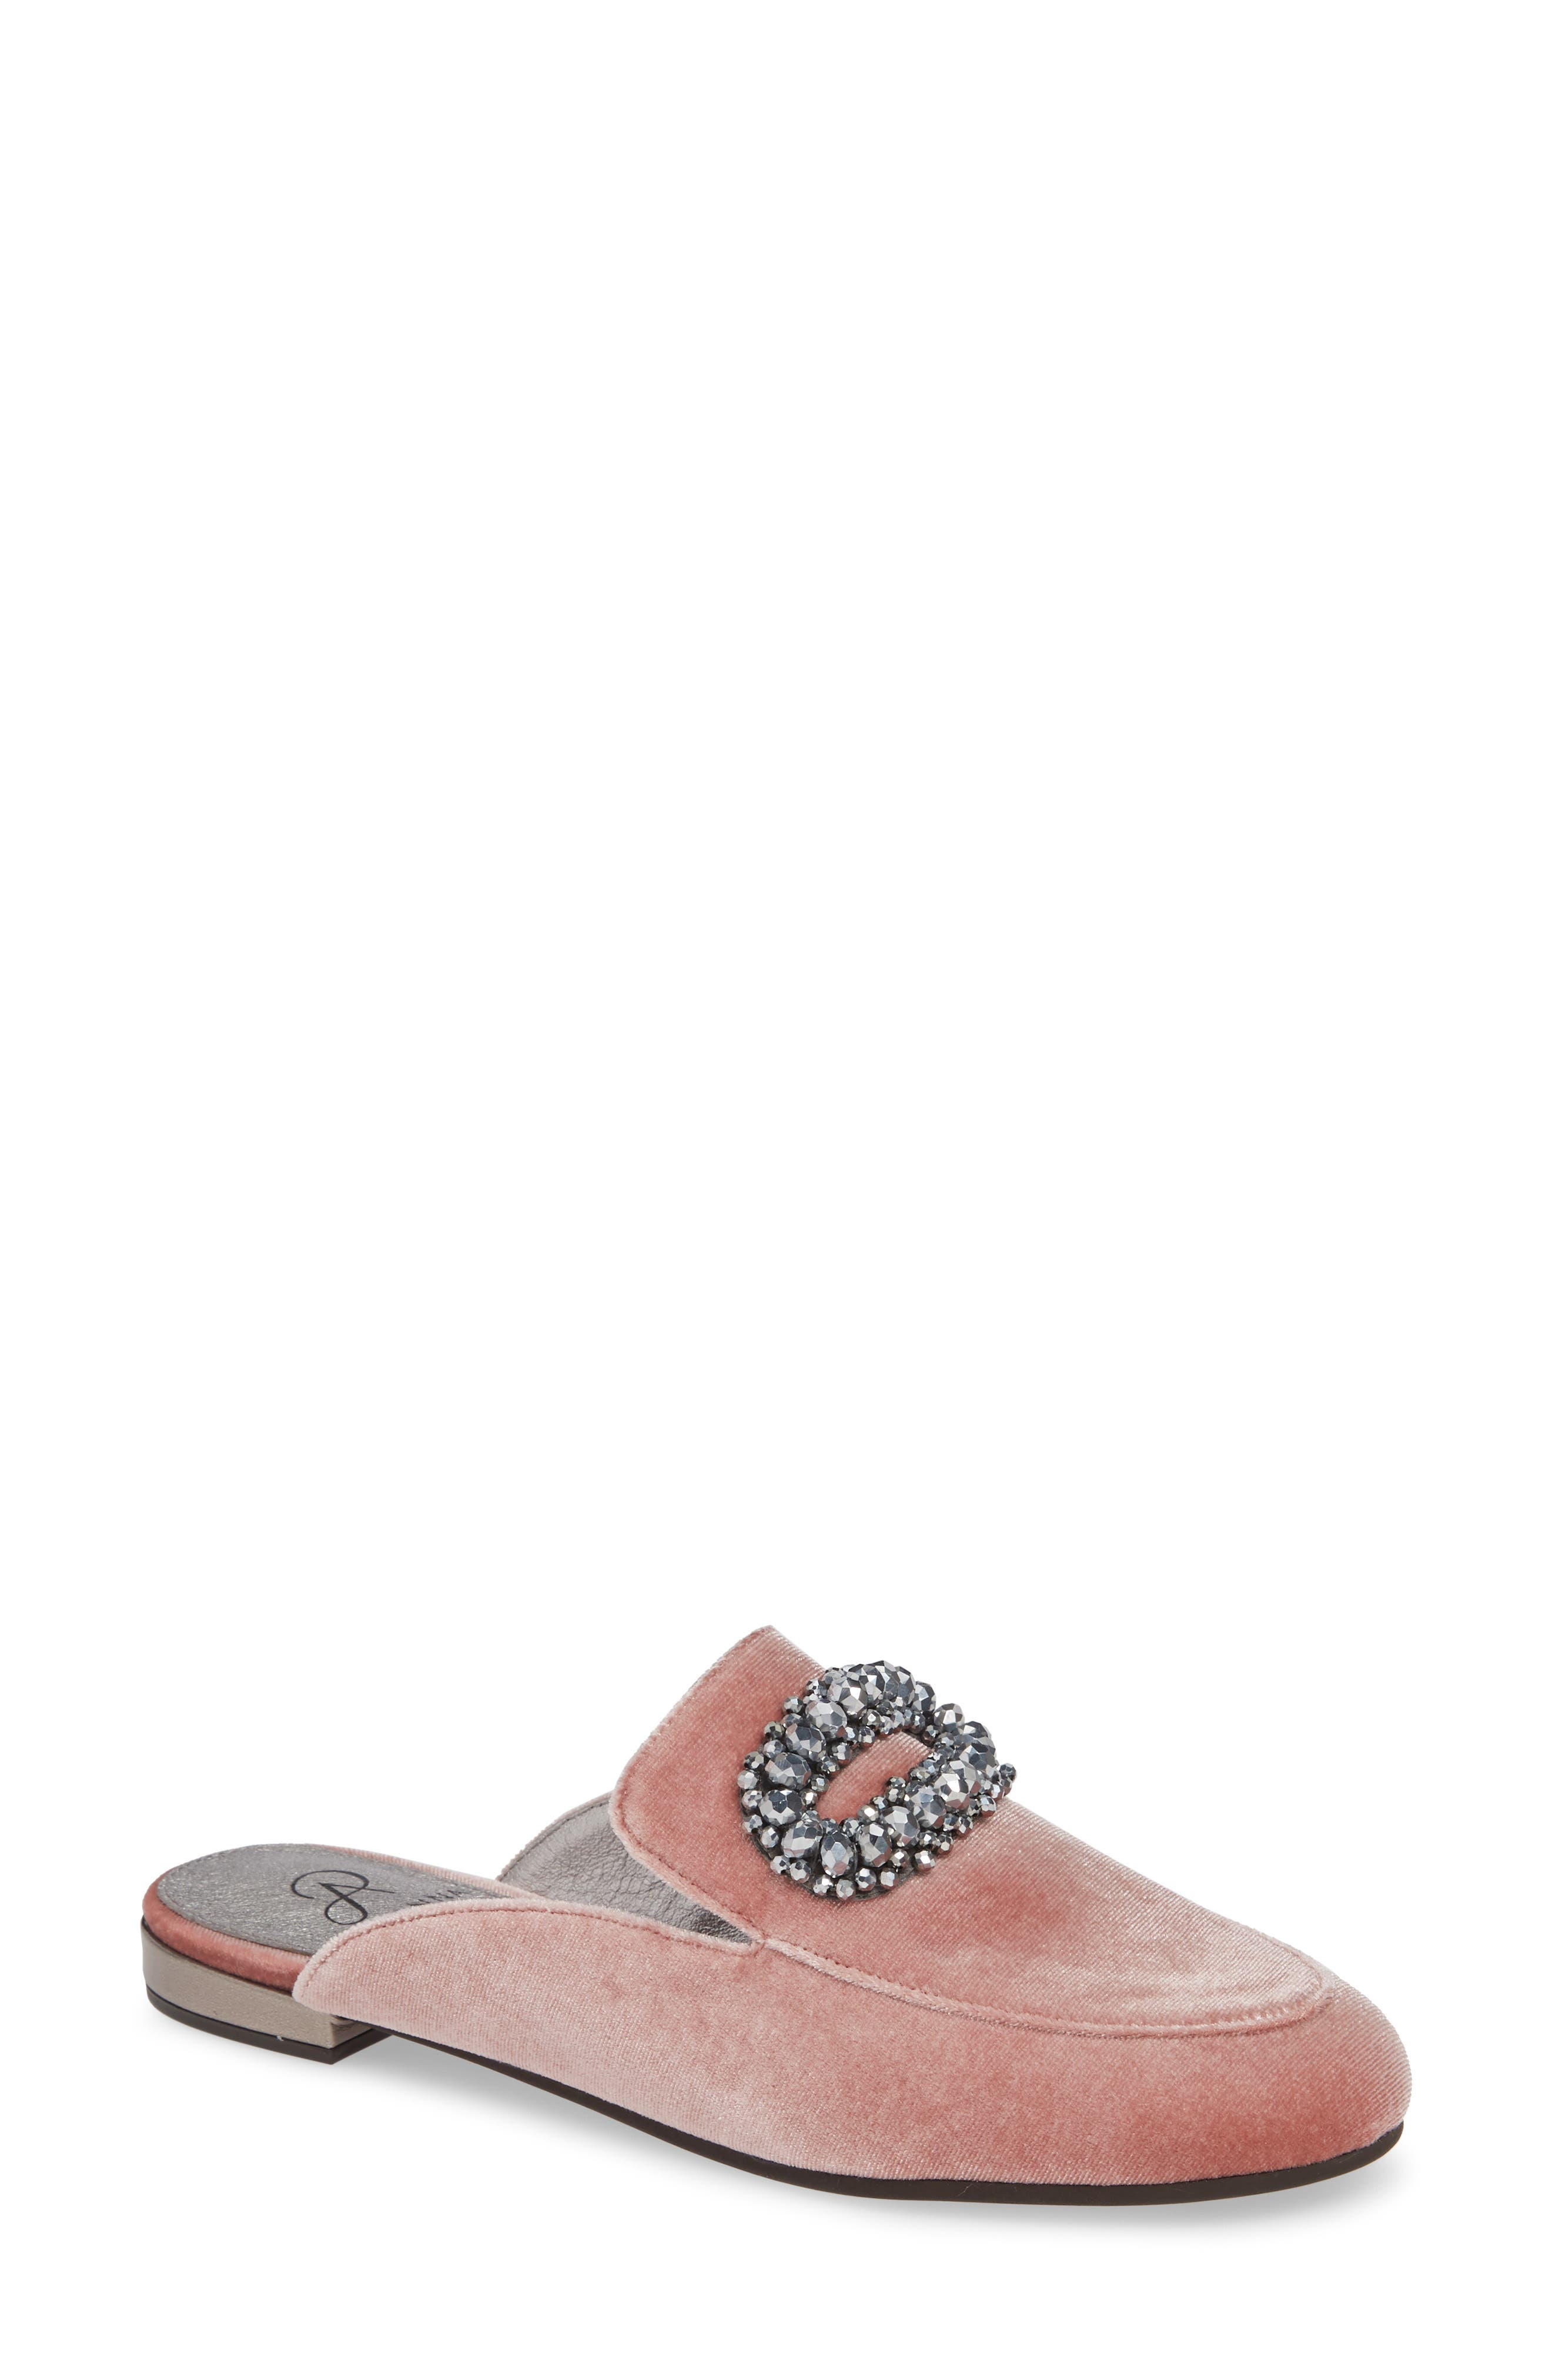 Adrianna Papell Becky Embellished Mule- Pink